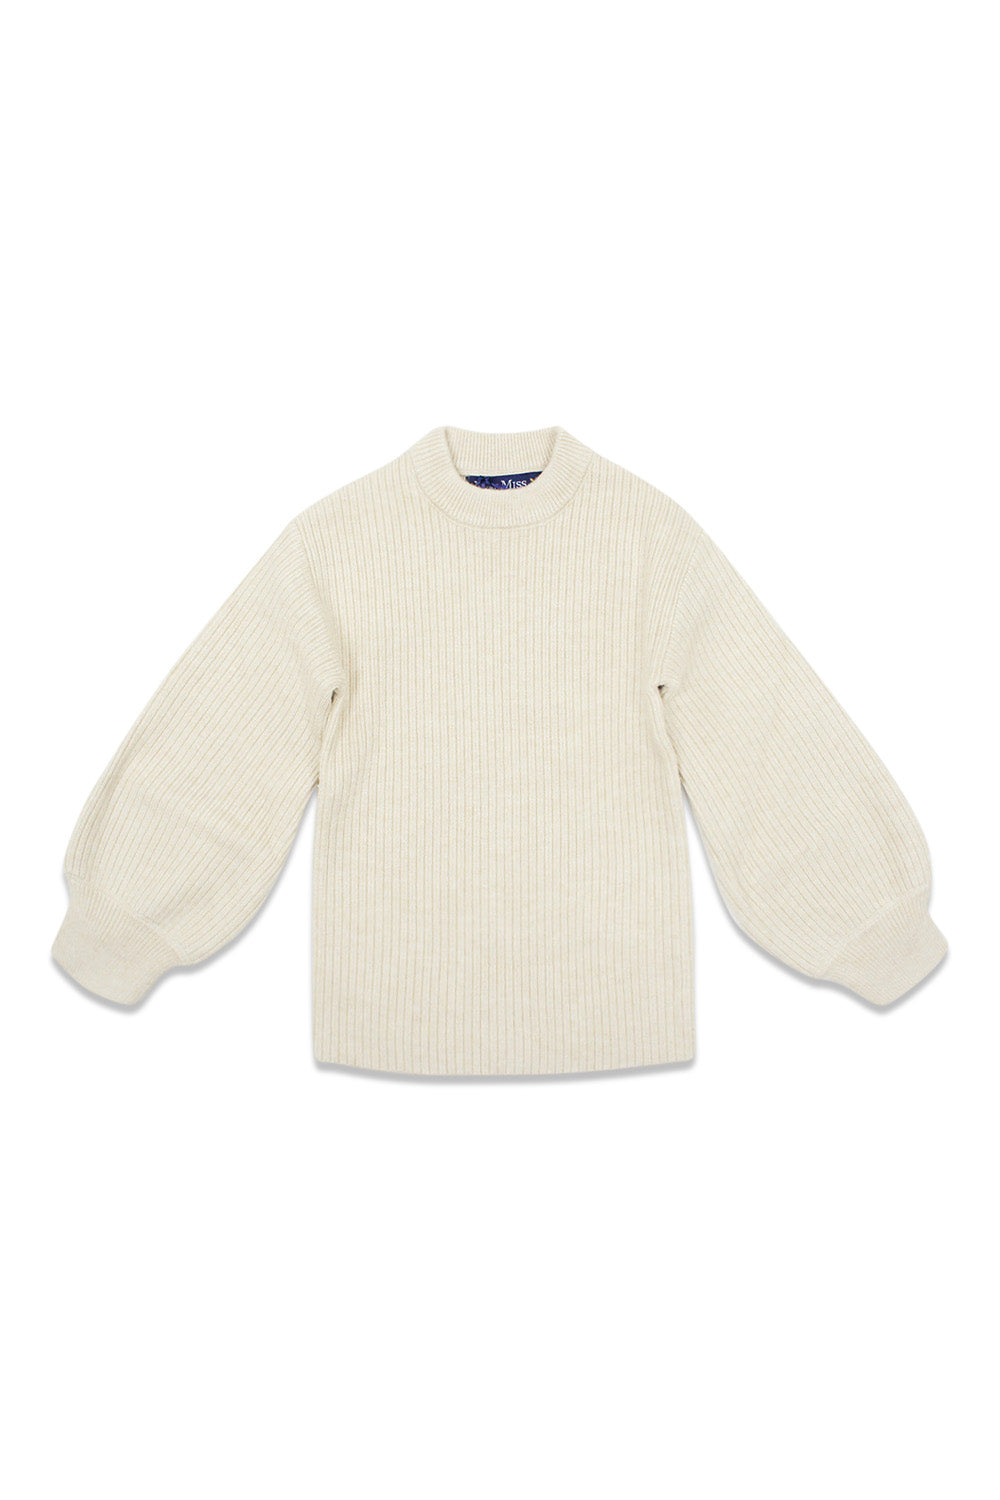 Euro Miss Ivory Puff Sleeve Sweater